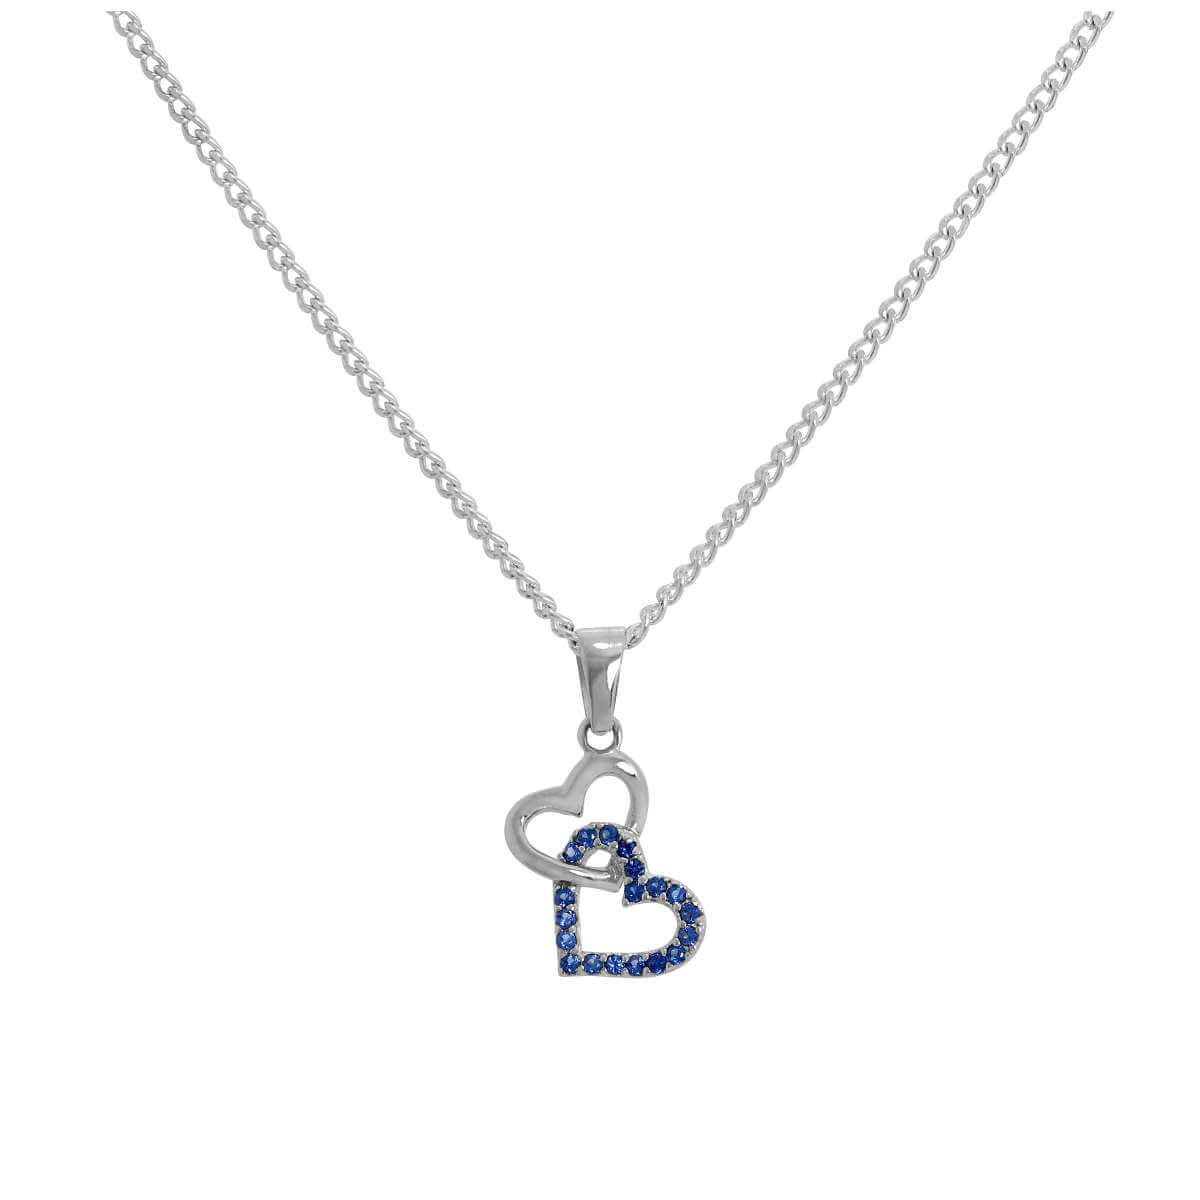 Sterling Silver & Blue CZ Crystal Entwined Hearts Pendant Necklace 16 - 24 Inches